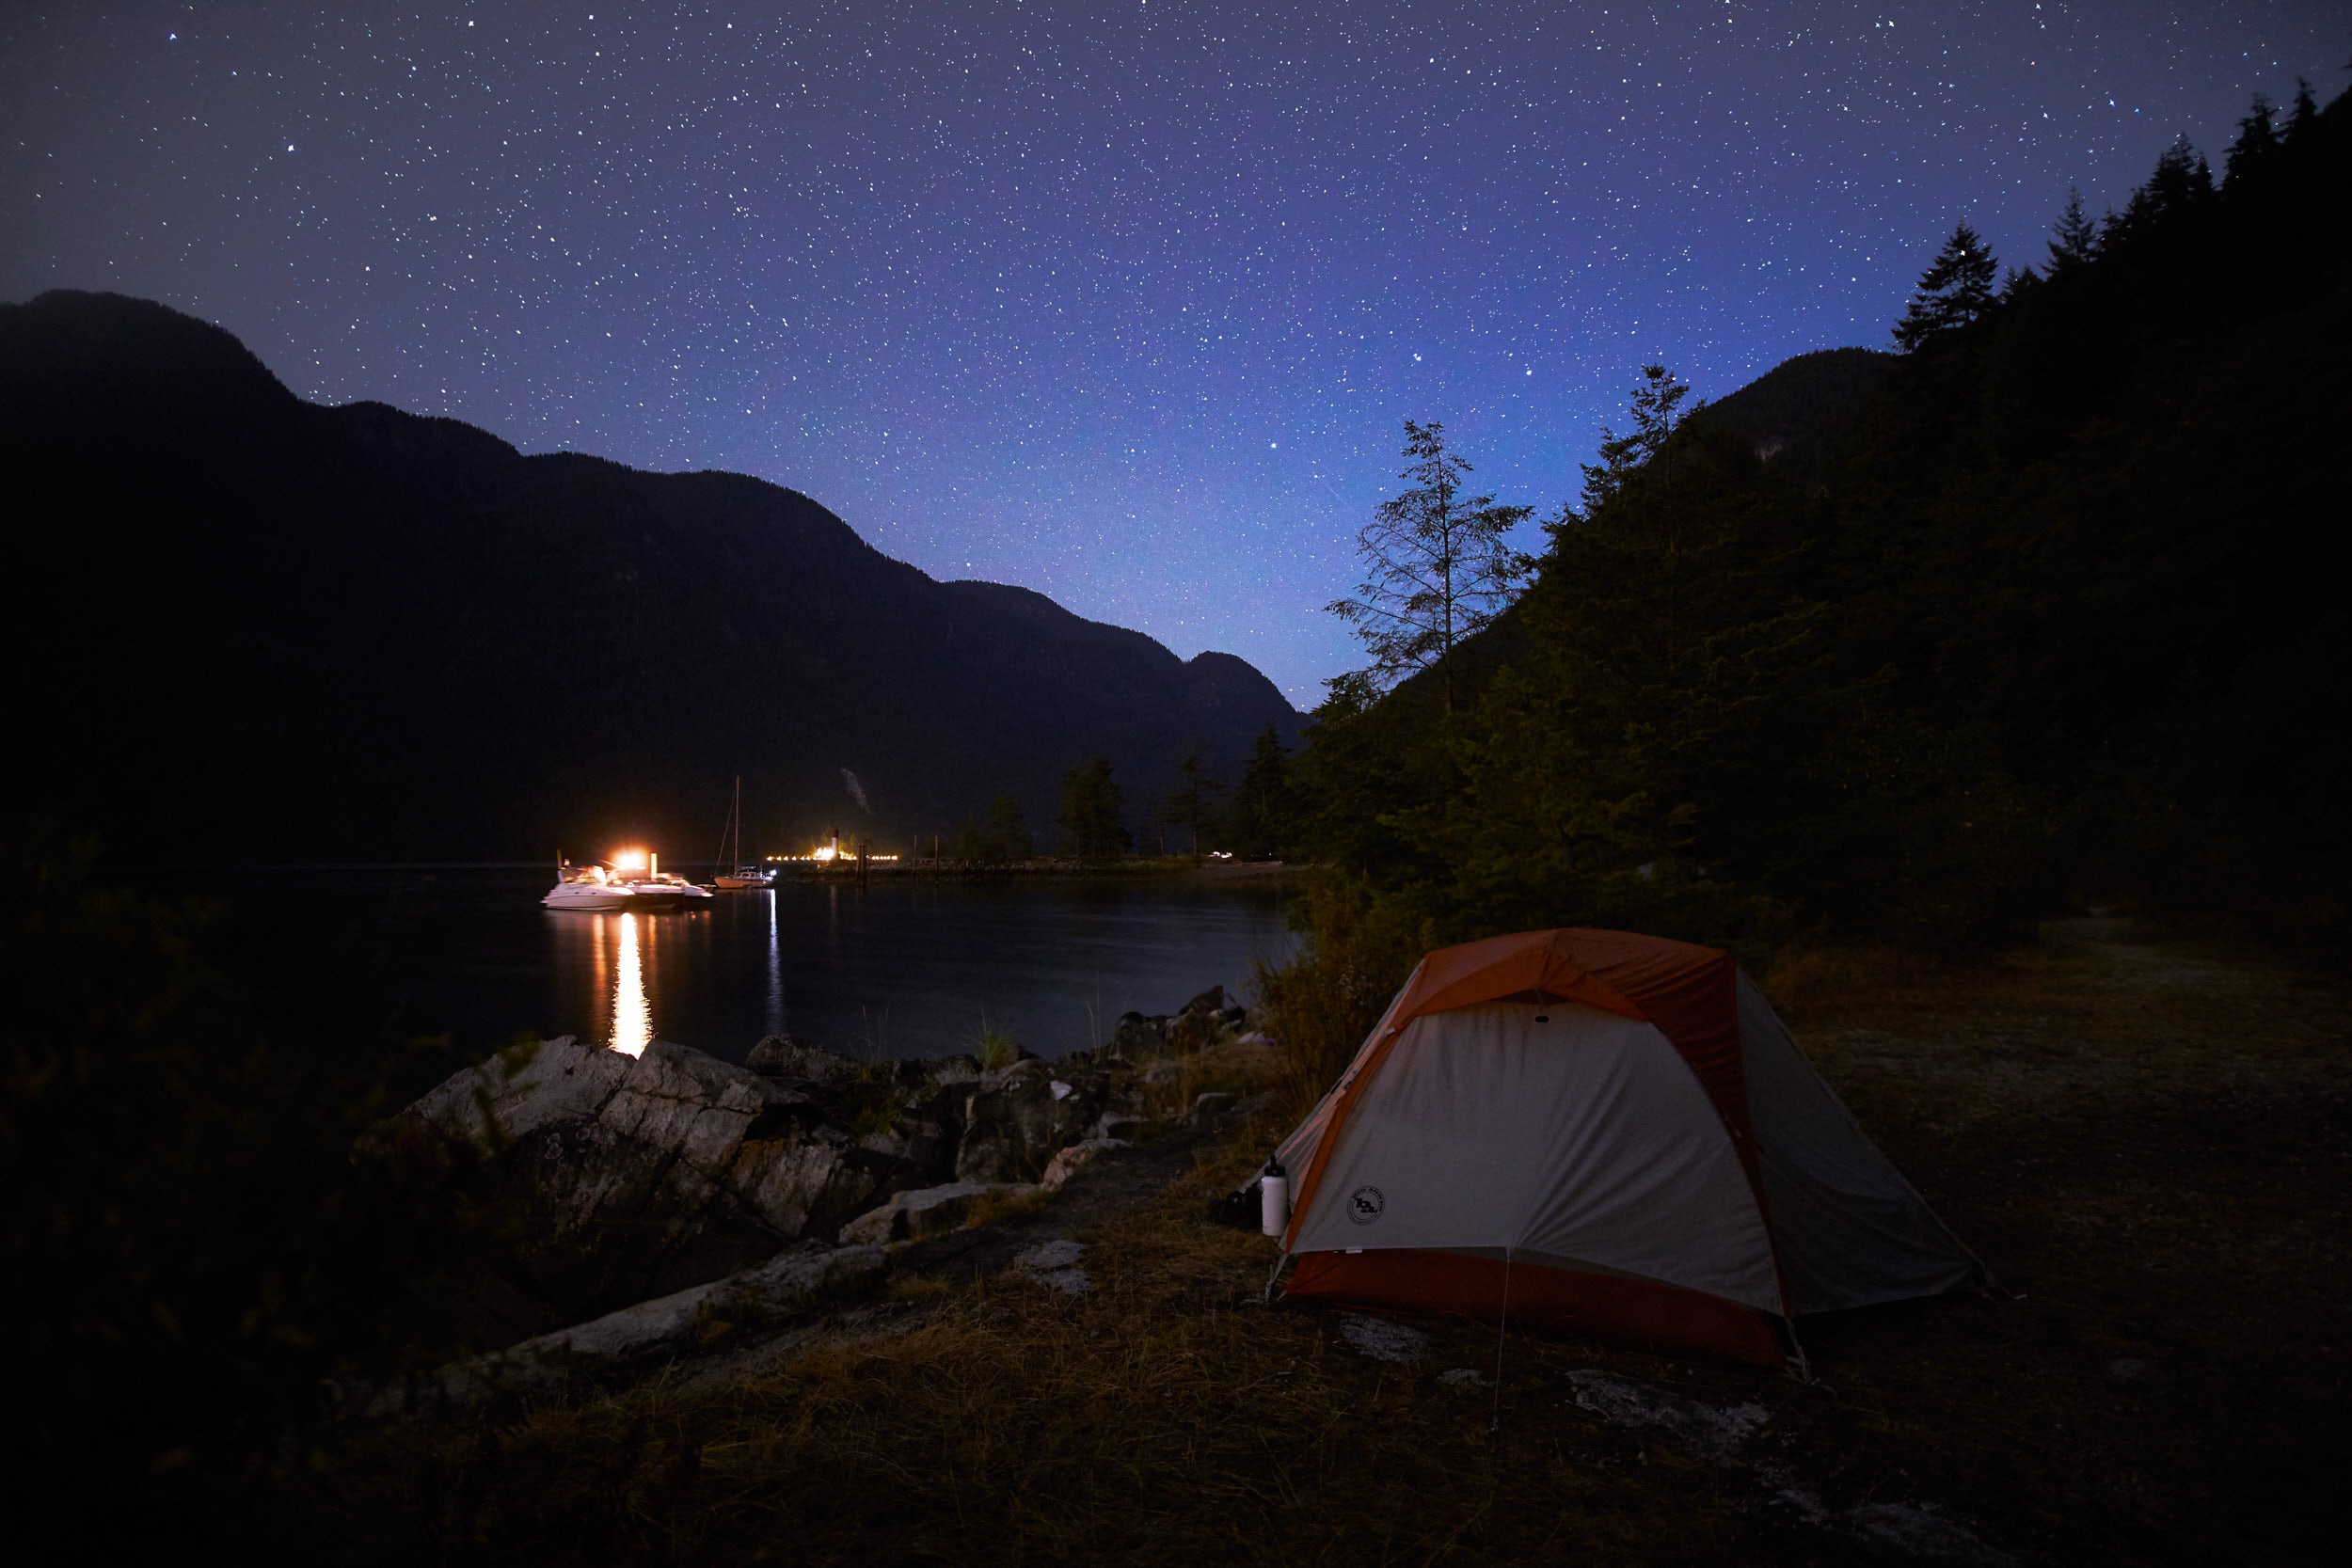 We found a camping area right next to the water and had clear skies the first night.